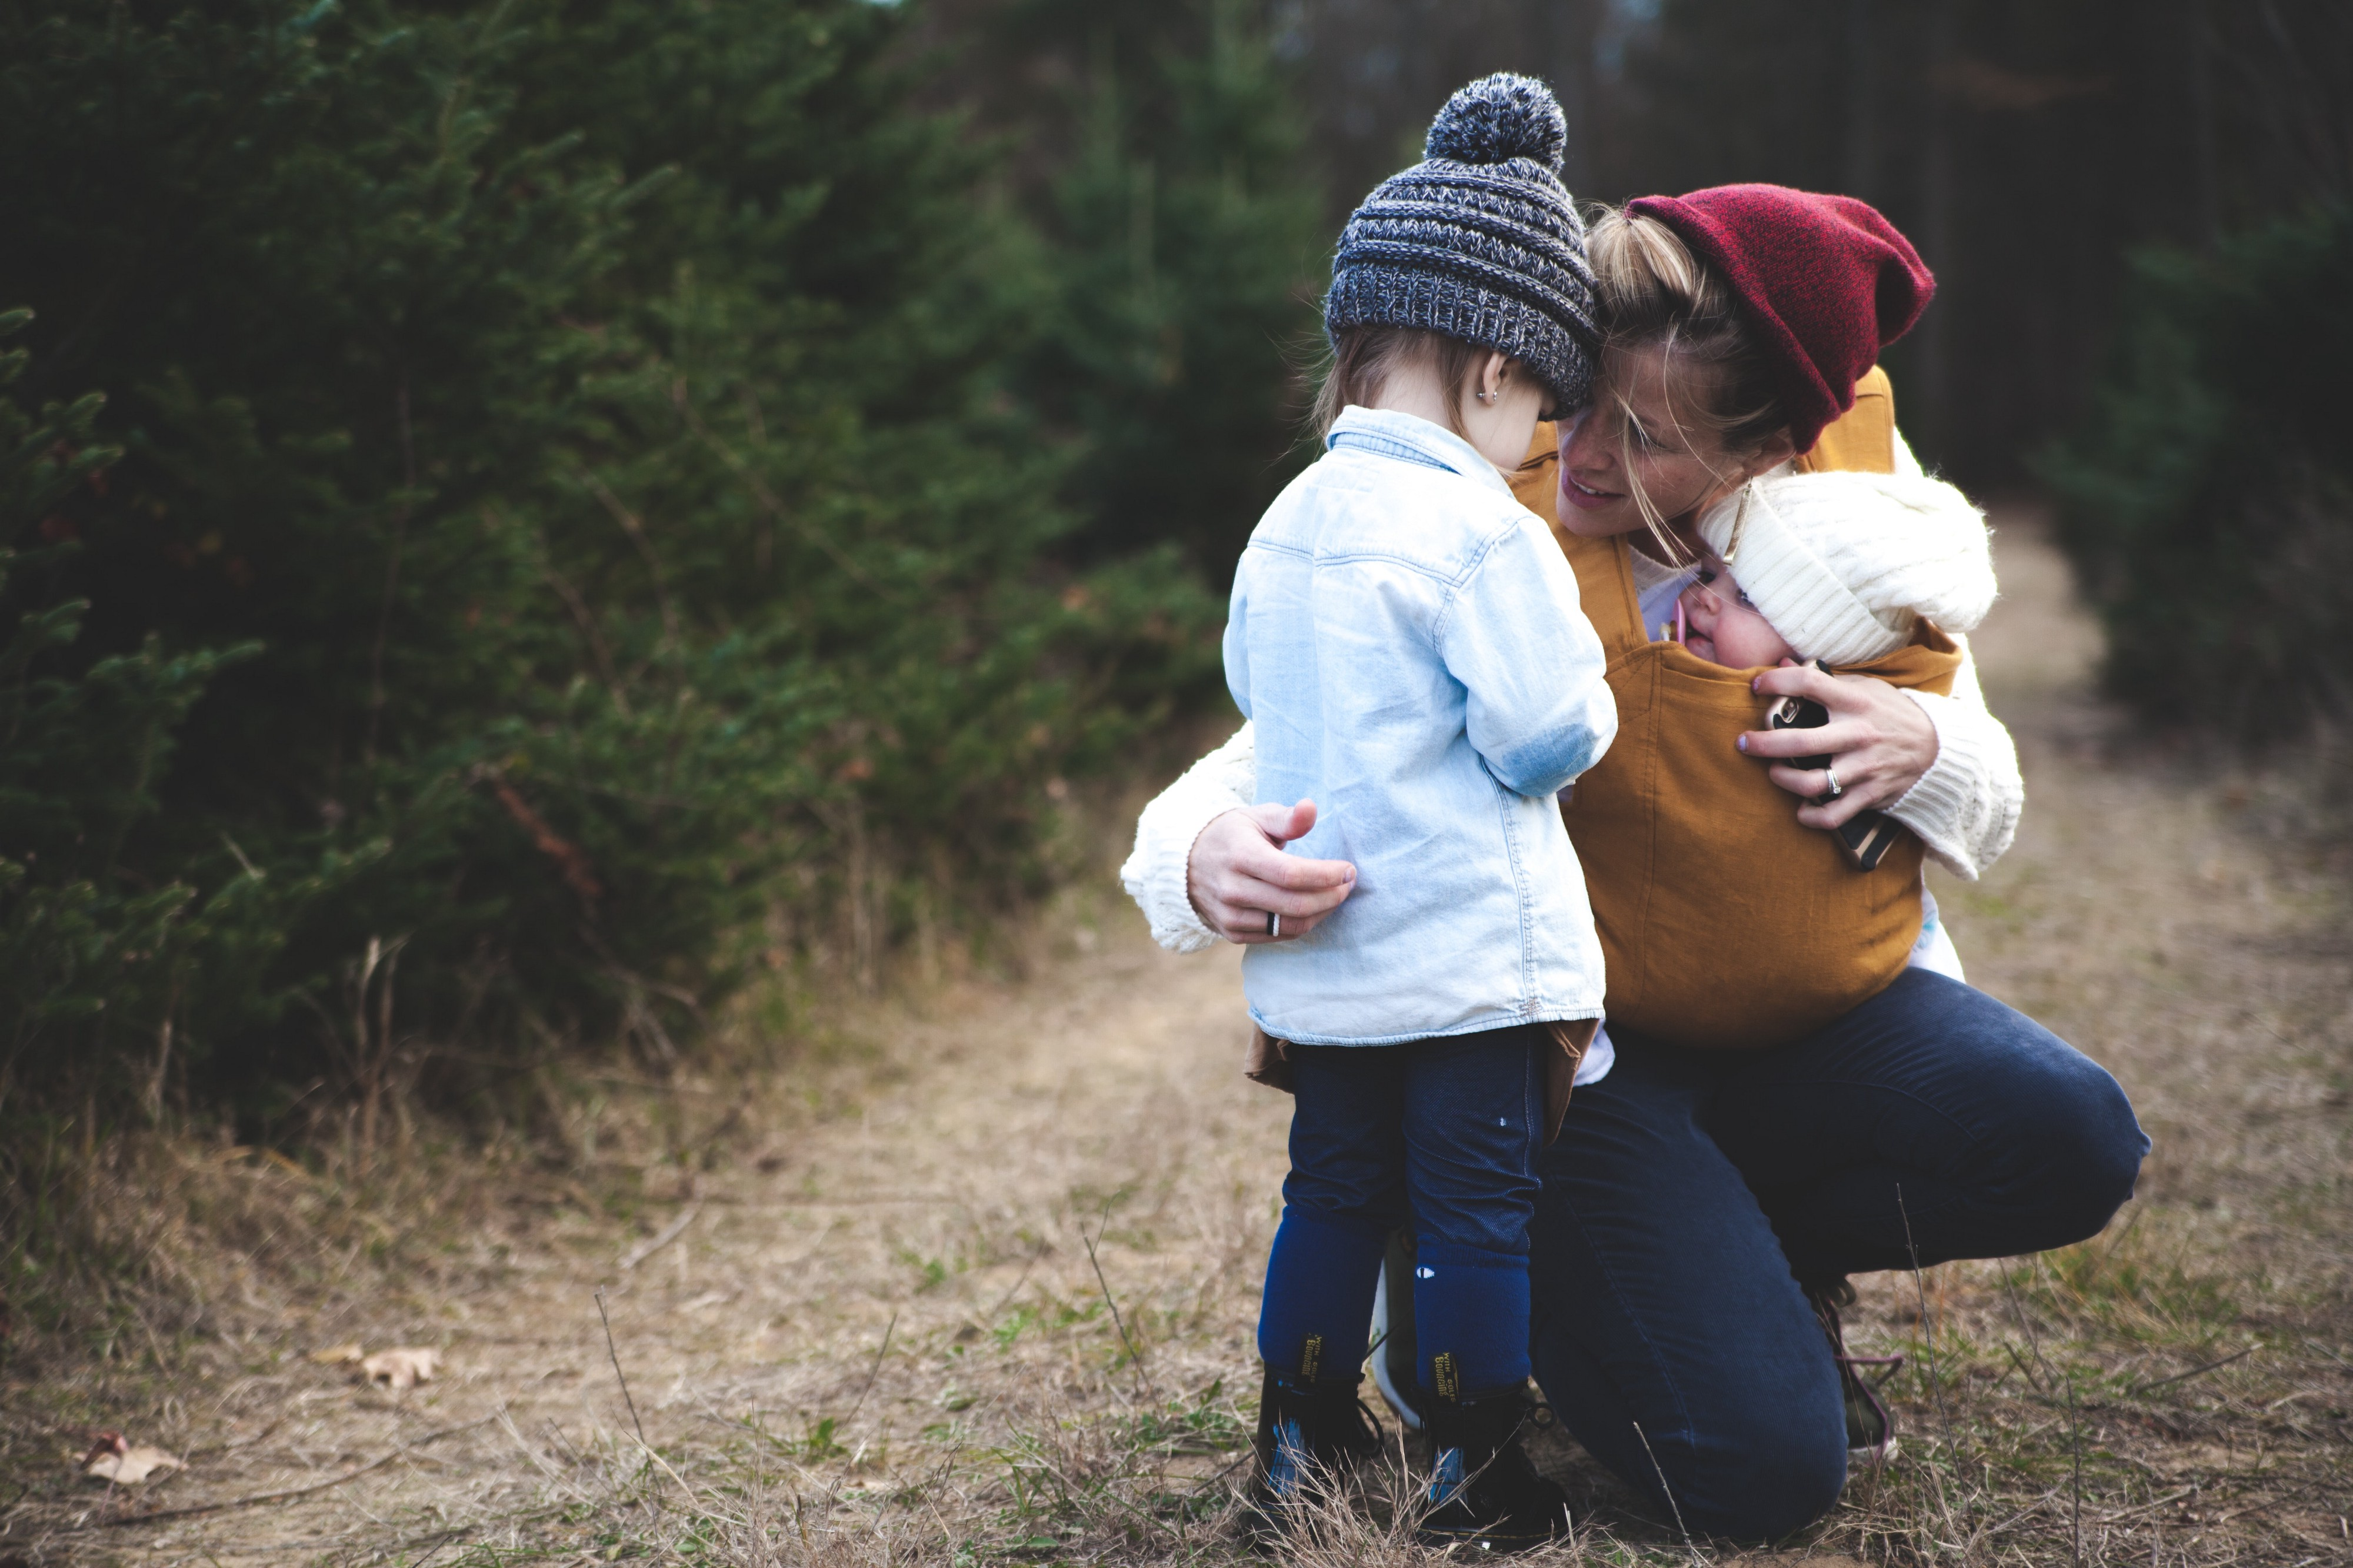 mother and two children hiking. image courtesy of pexels.com